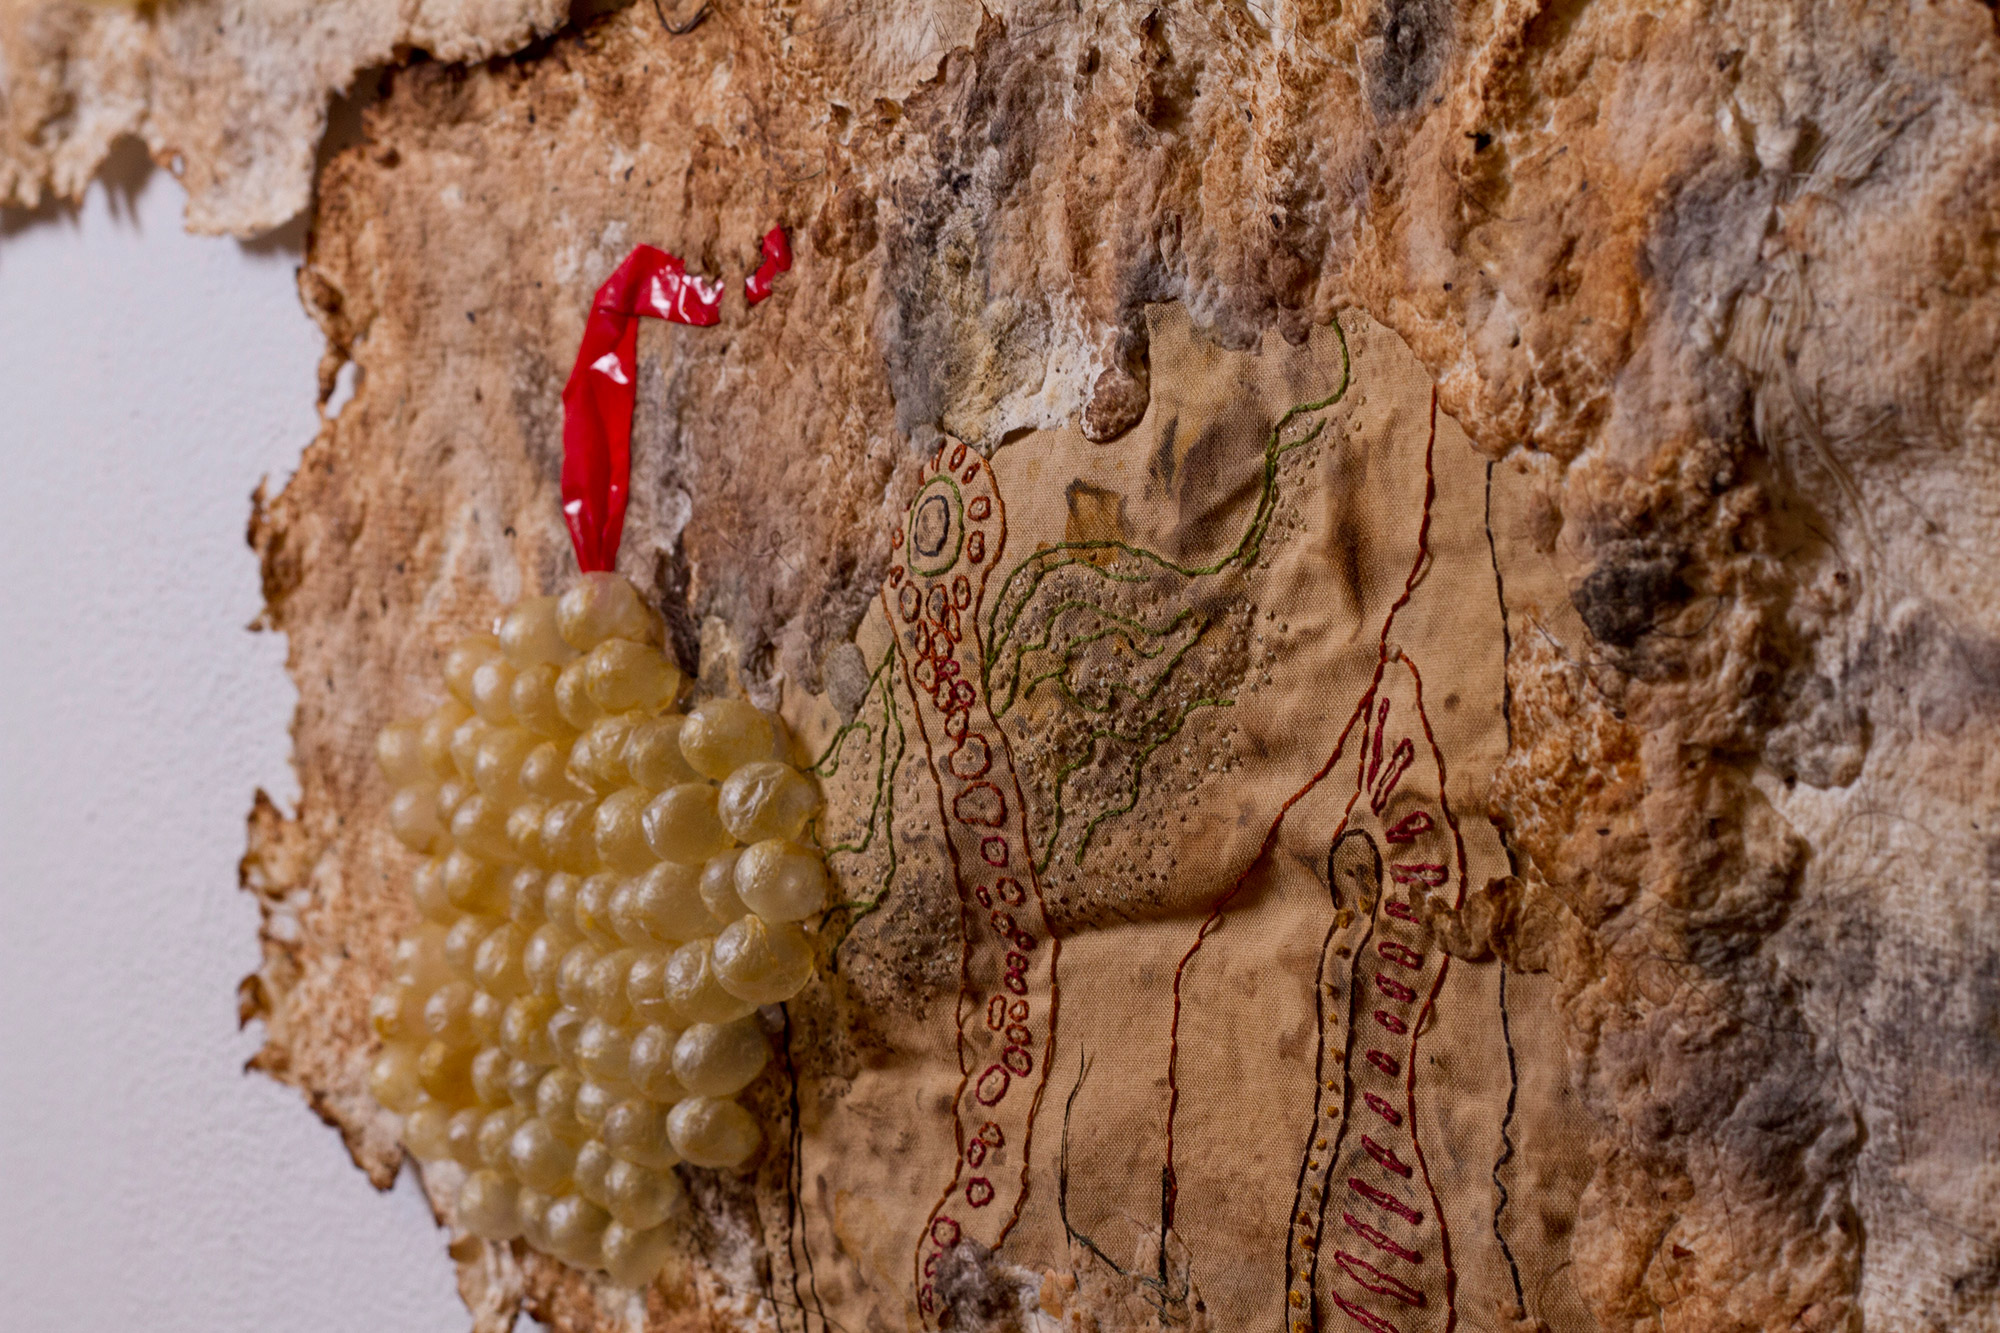 Heather Komus - Gorge and Grow - close-up intestine embroidery